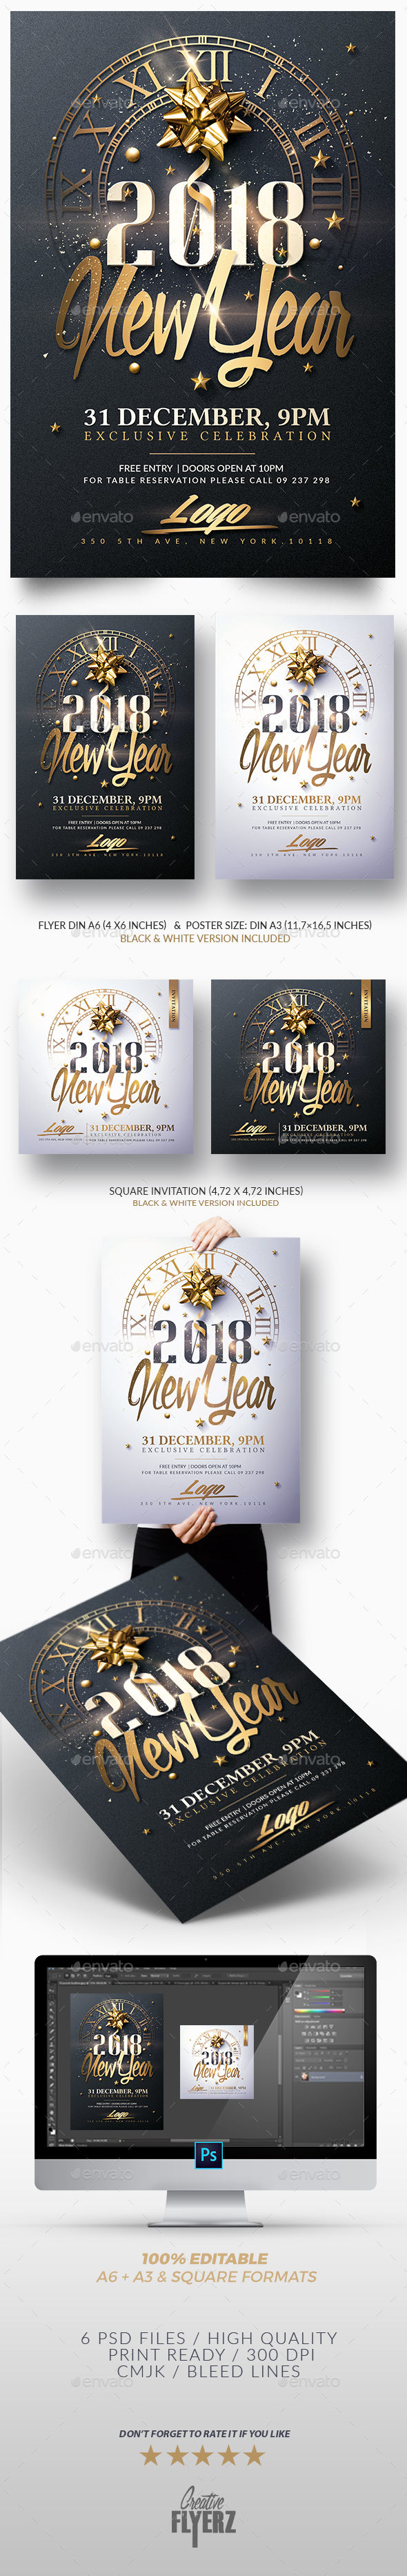 New Year Invitation - Psd Package - Print Templates